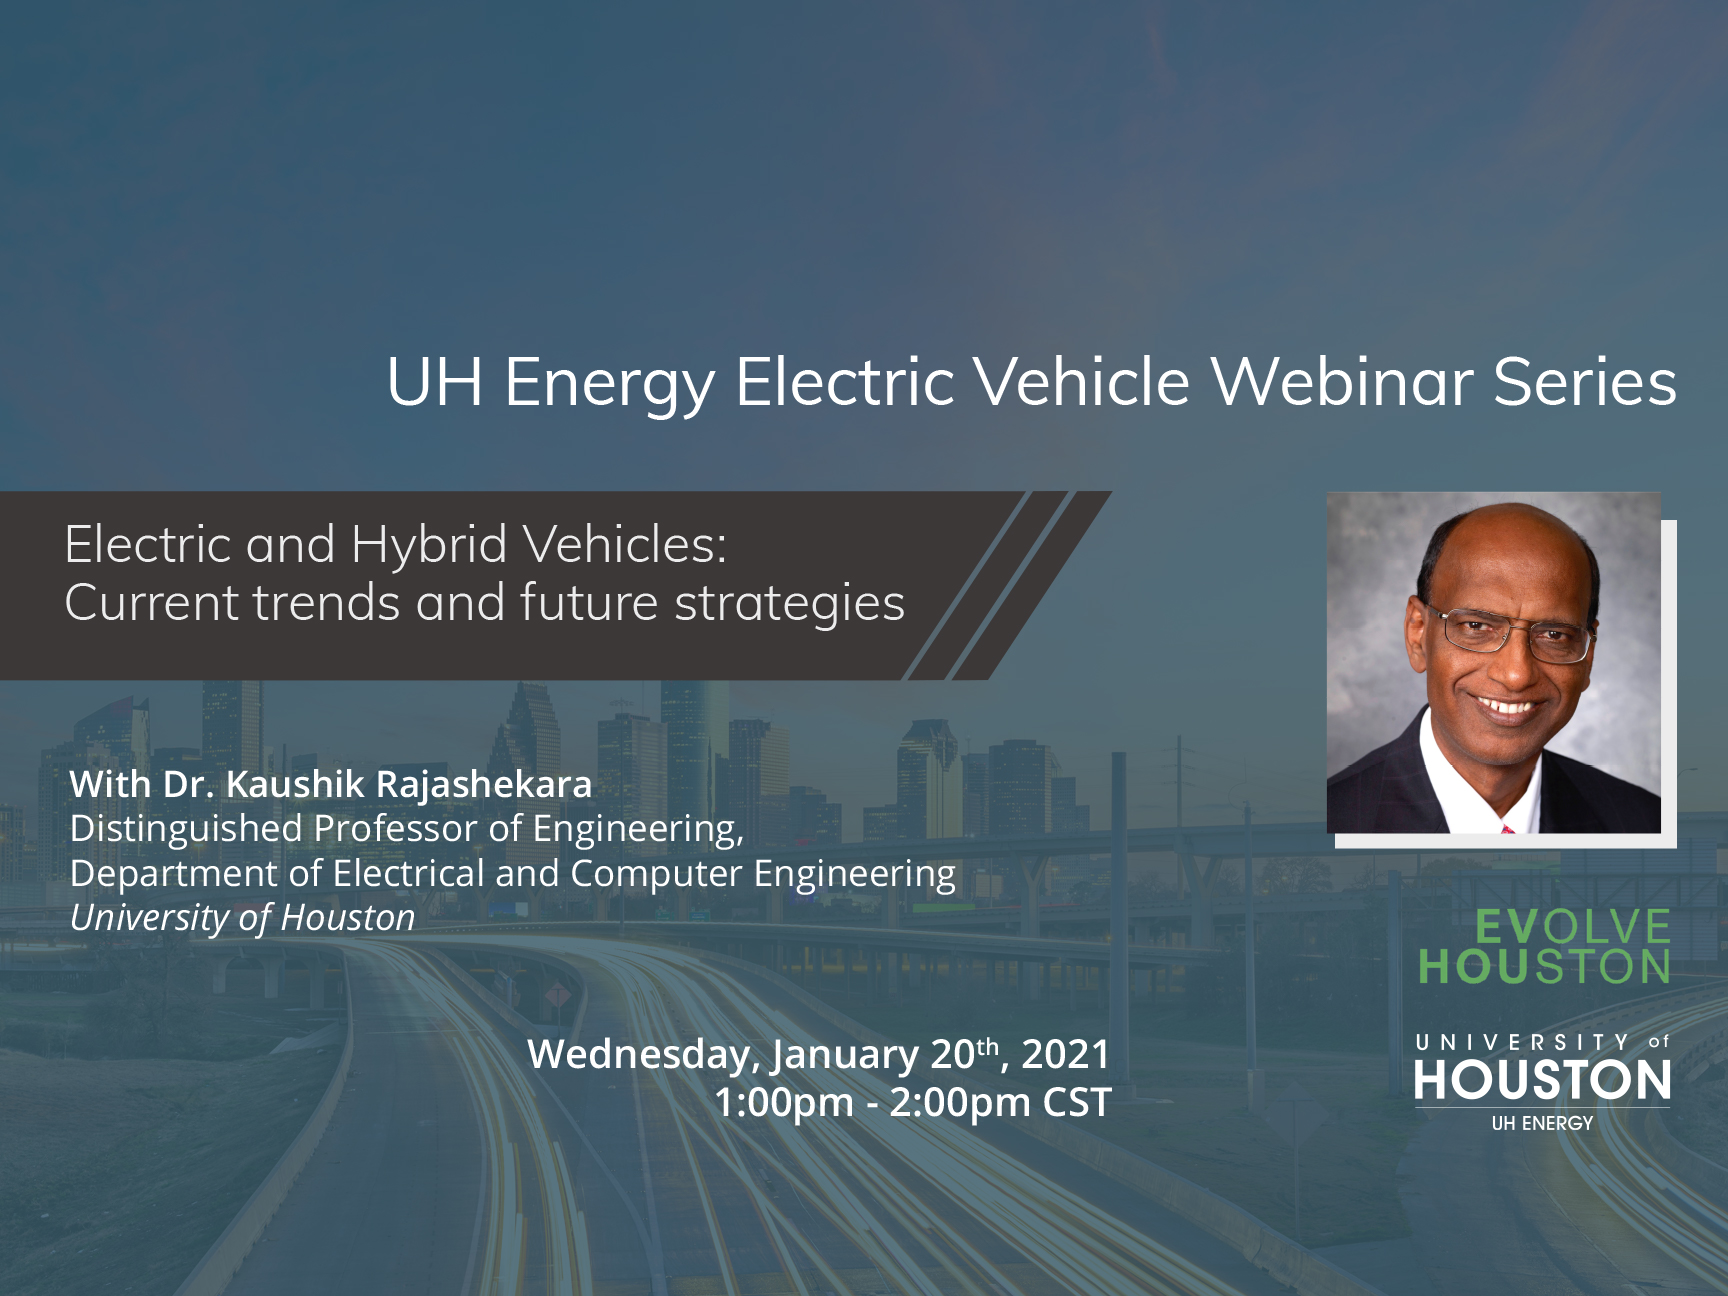 20-21 UH Energy Electric Vehicle Webinar Series - Electric & Hybrid Vehicles: Current Trends & Future Strategies Image